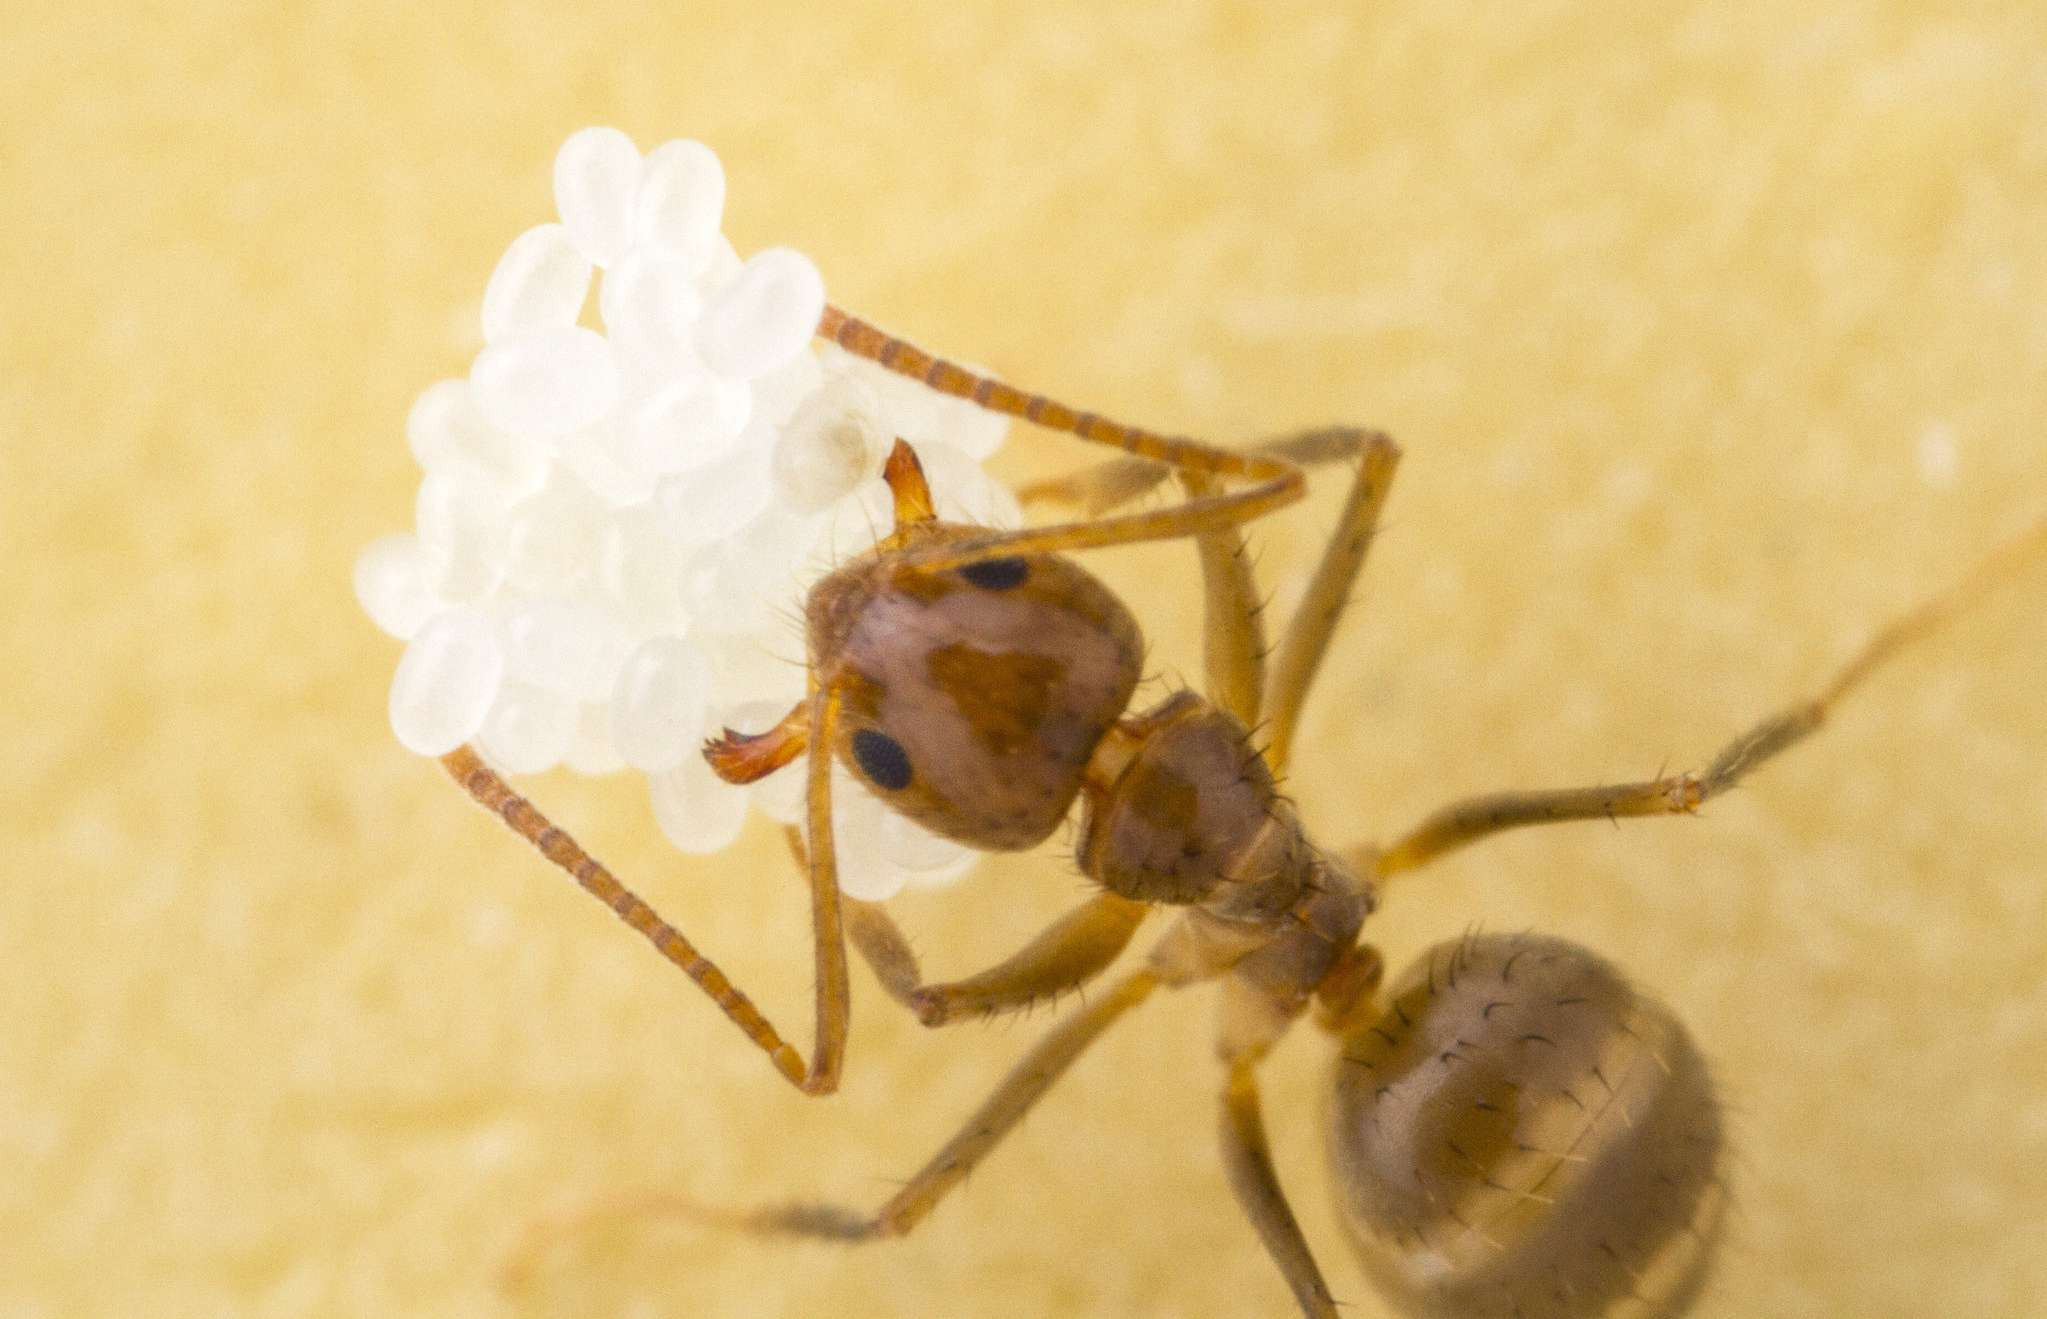 red Rasberry crazy ant with white eggs on a yellow surface